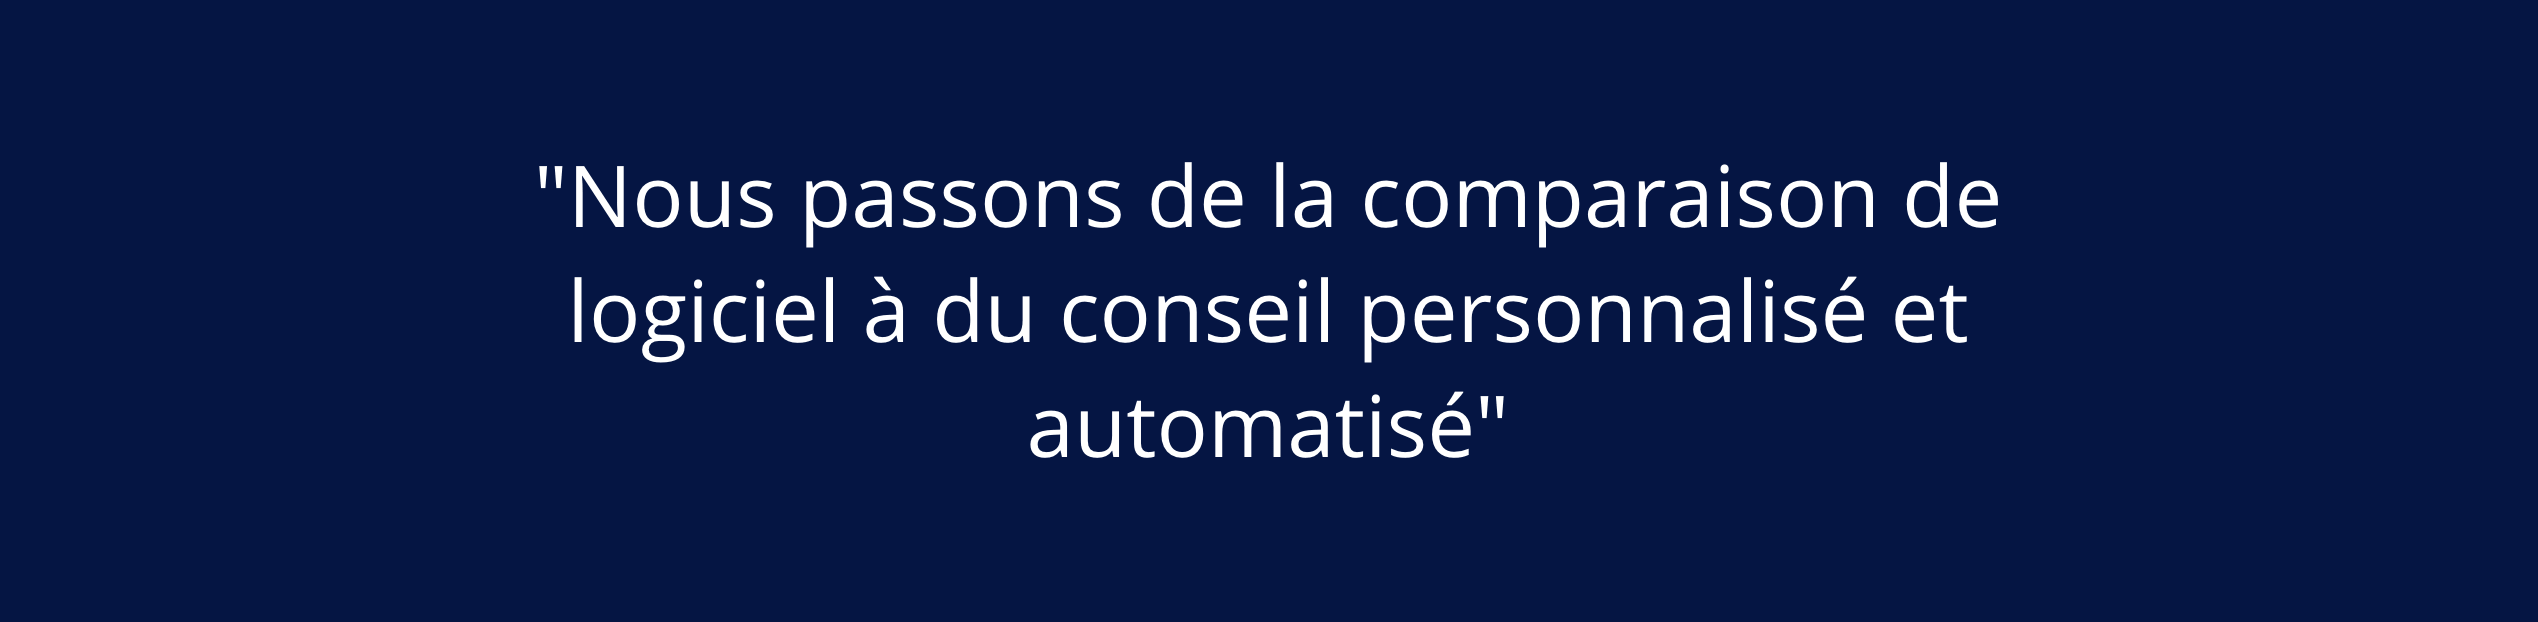 comparateur logiciel marketing automation